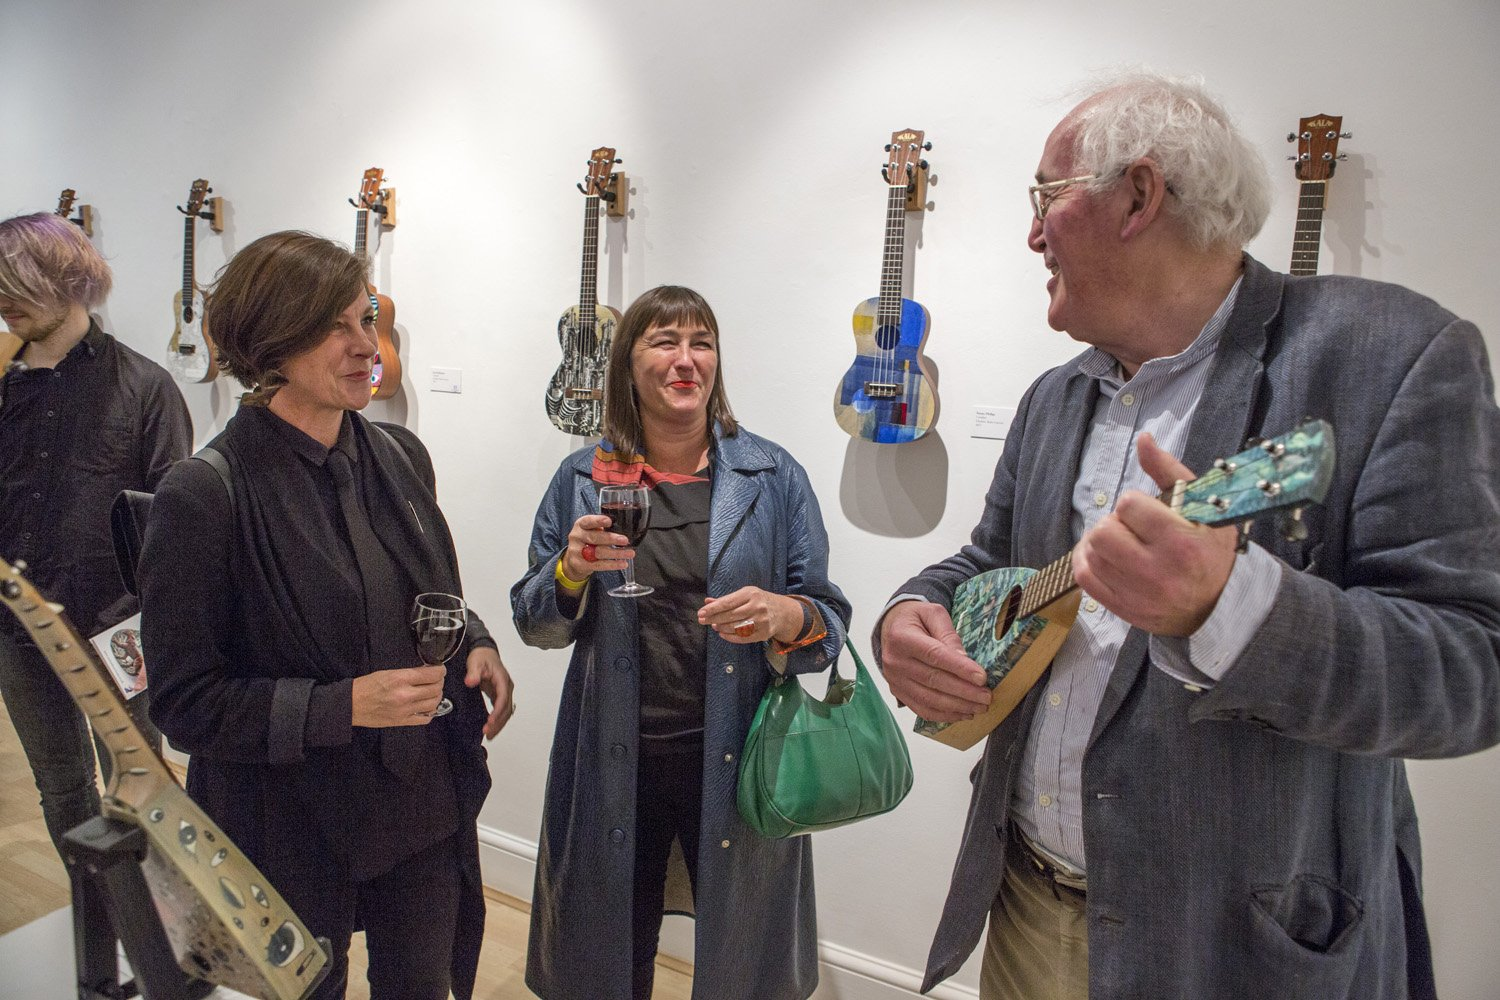 Mick Rooney RA plays his Uke to members of The Ukulele Orchestra of Great Britain